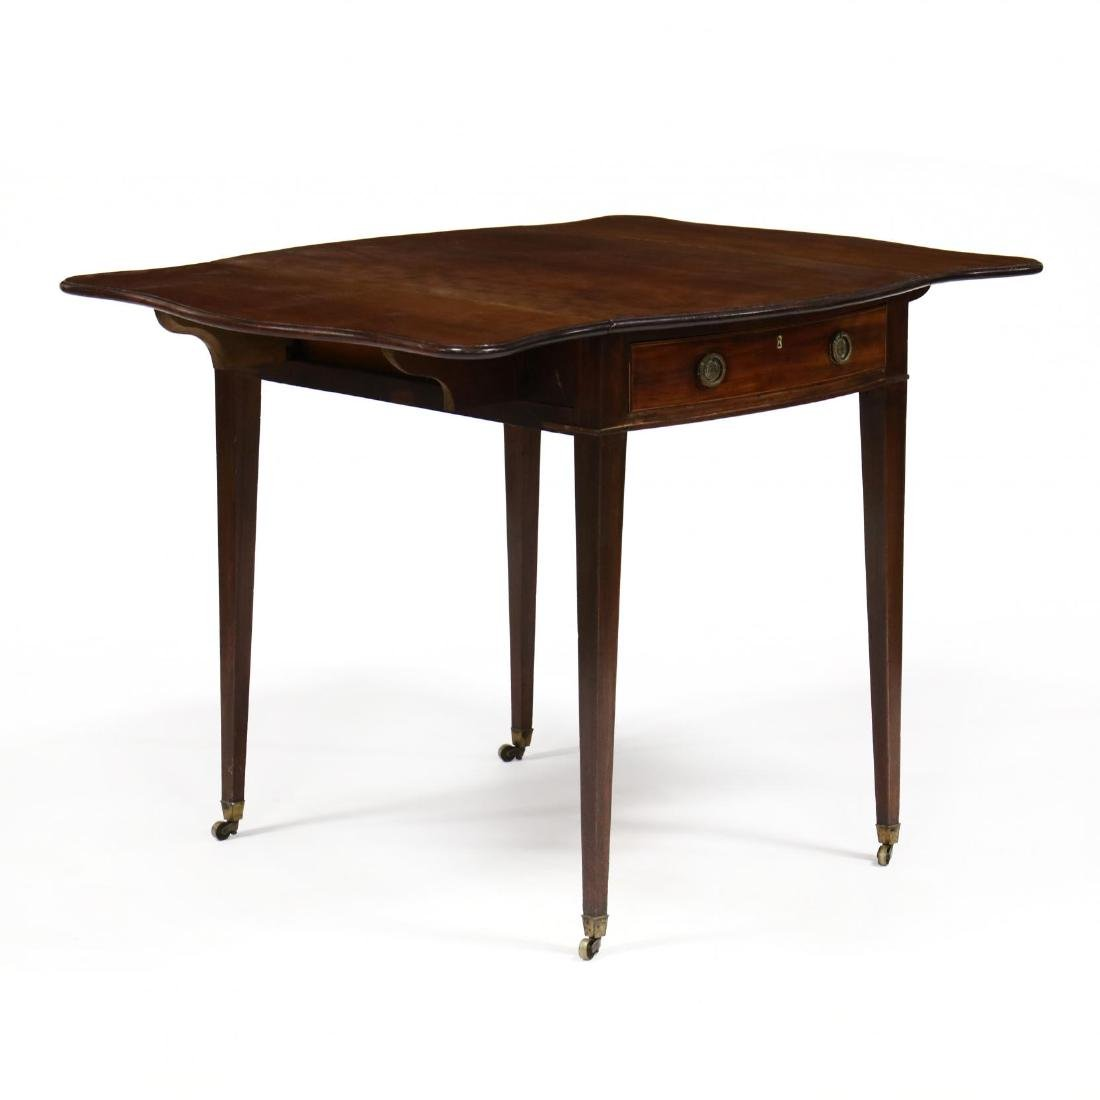 George III Mahogany Bow Front Pembroke Table - 5